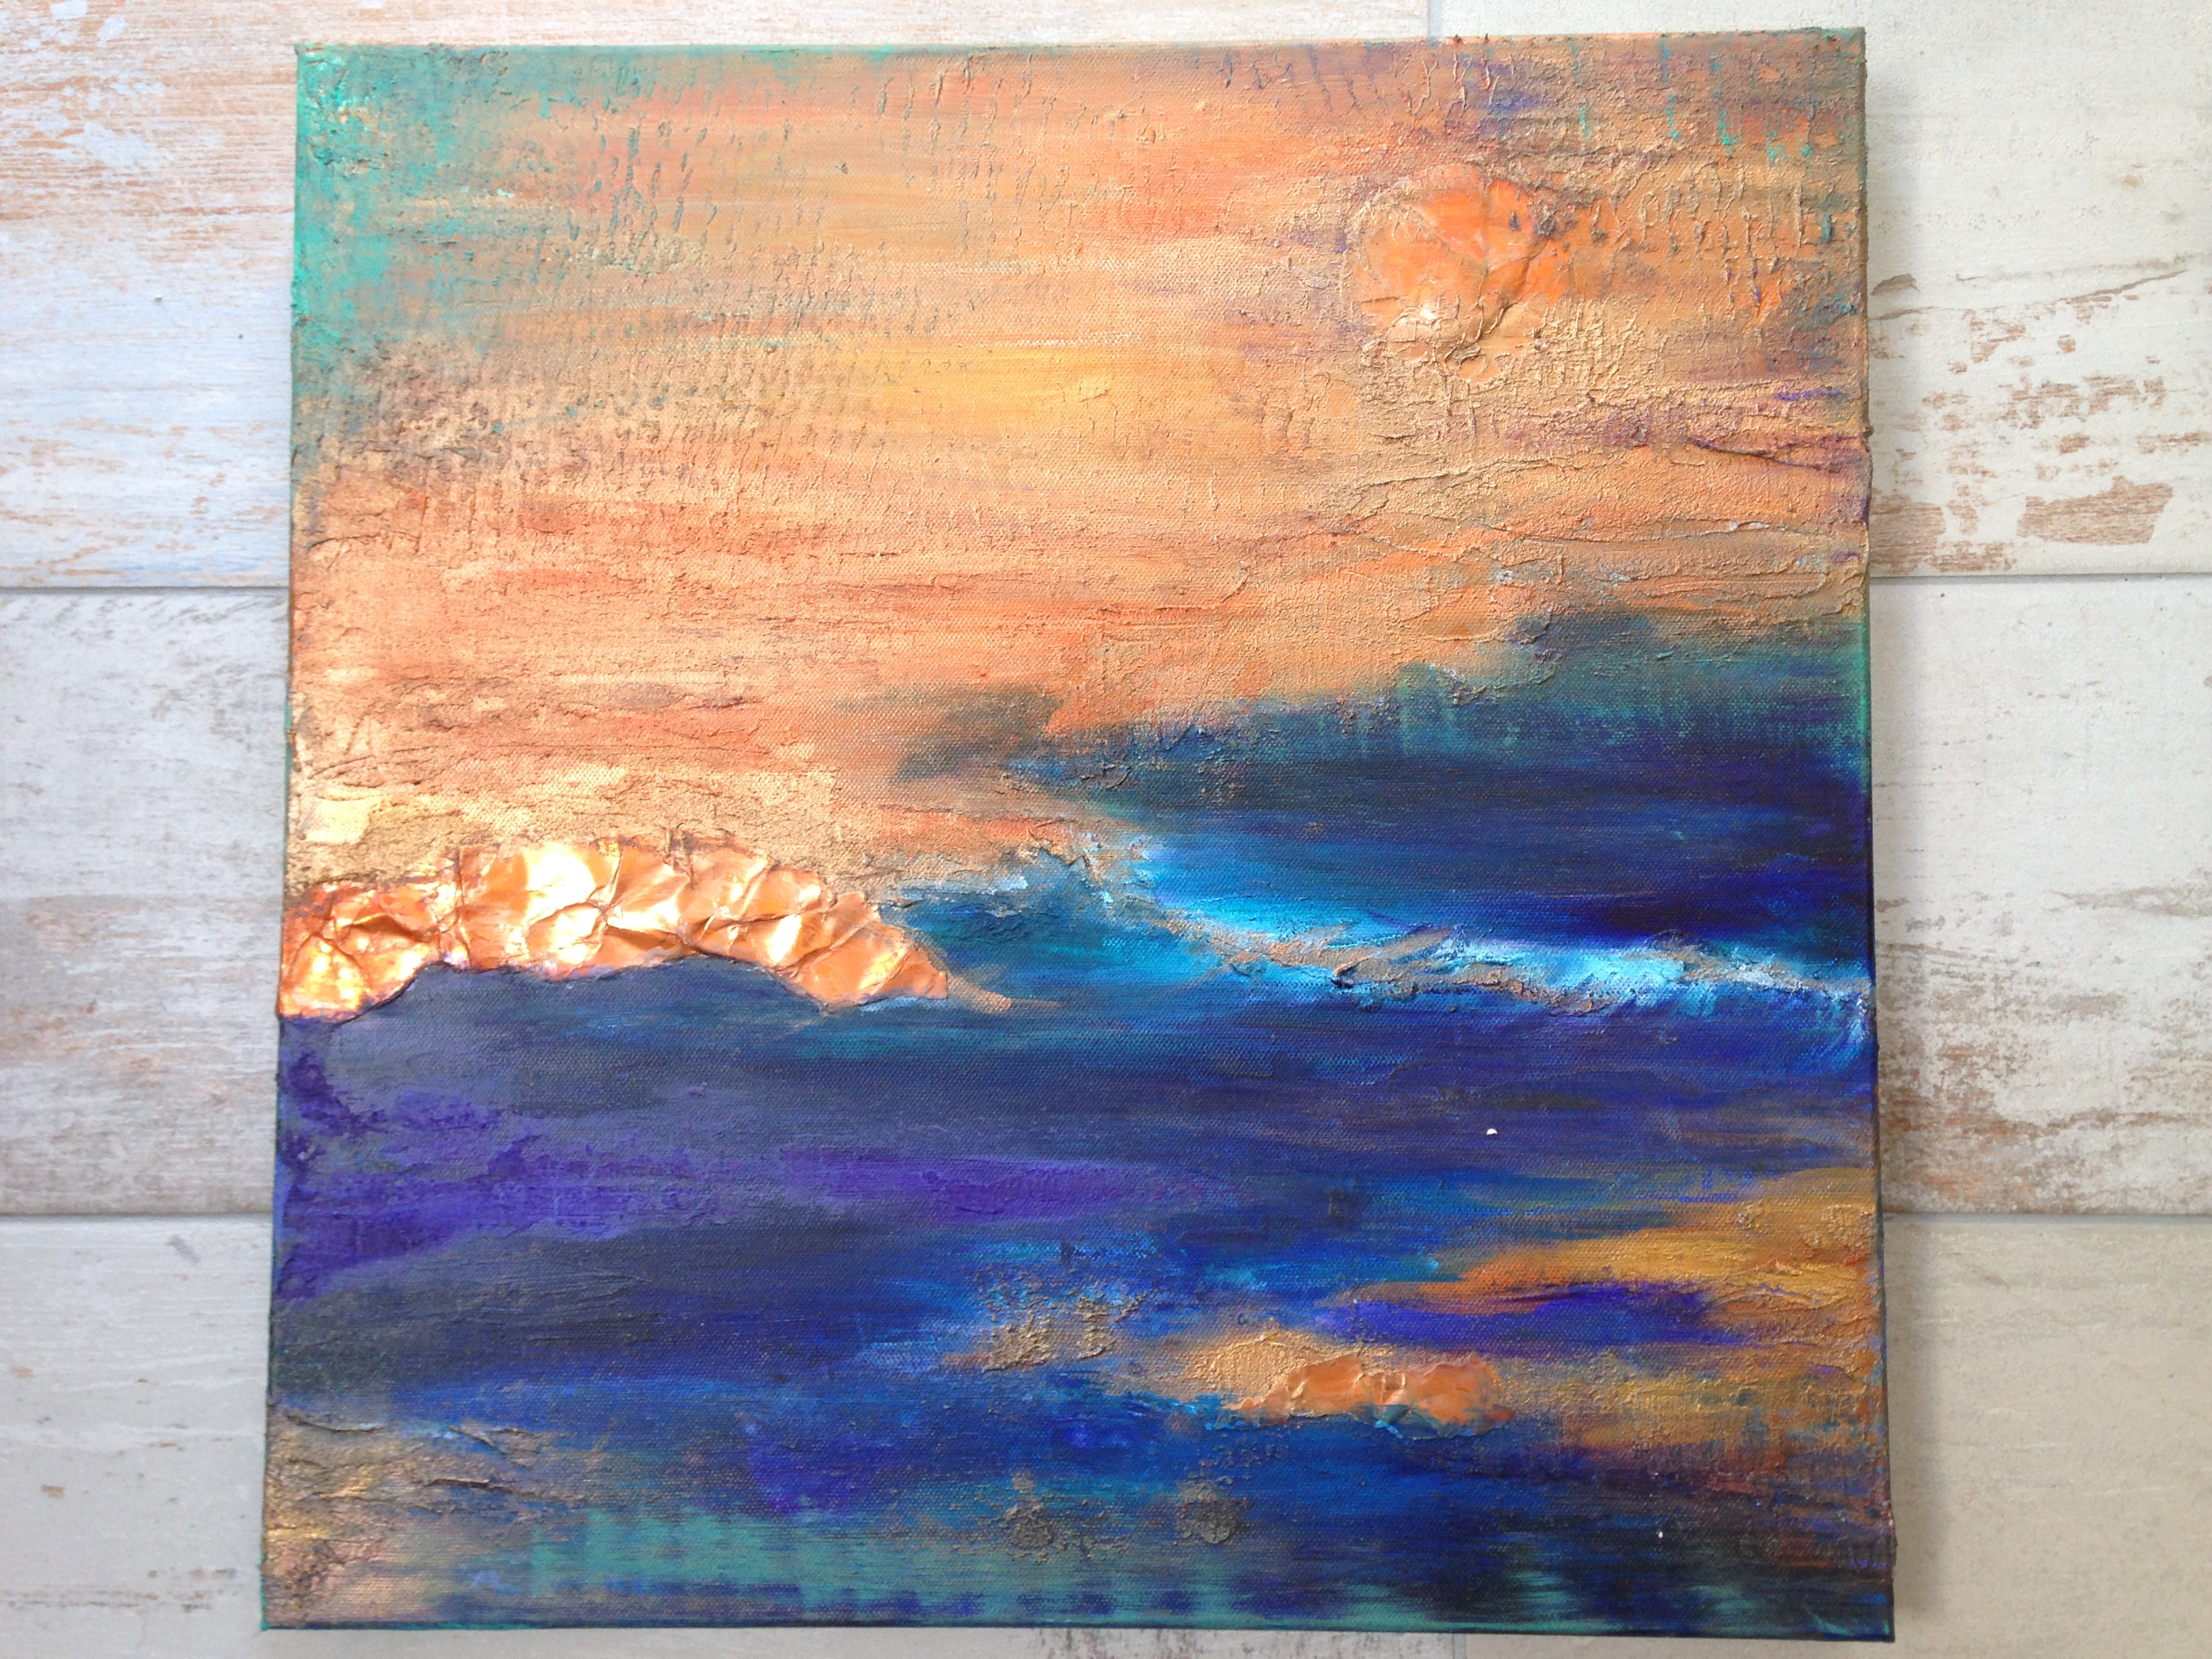 A Glimmer of Hope - Sold